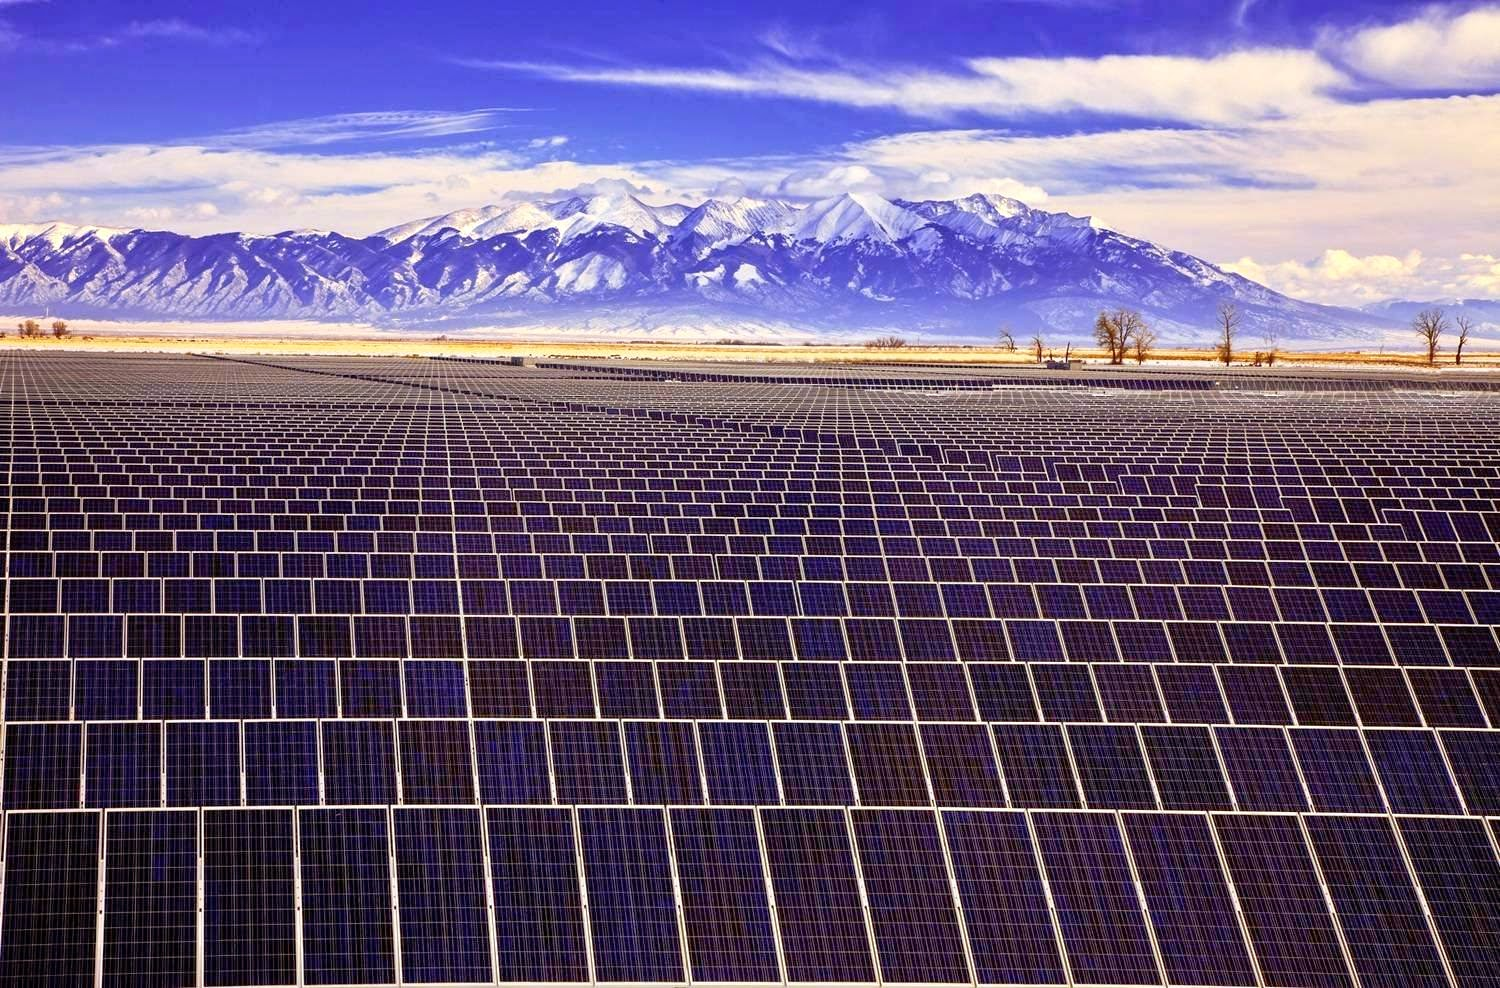 Enel Green Power has begun construction of the Pampa Norte photovoltaic plant, which is located in the municipality of Taltal, in Chile s Antofagasta region. (Courtesy: evwind)